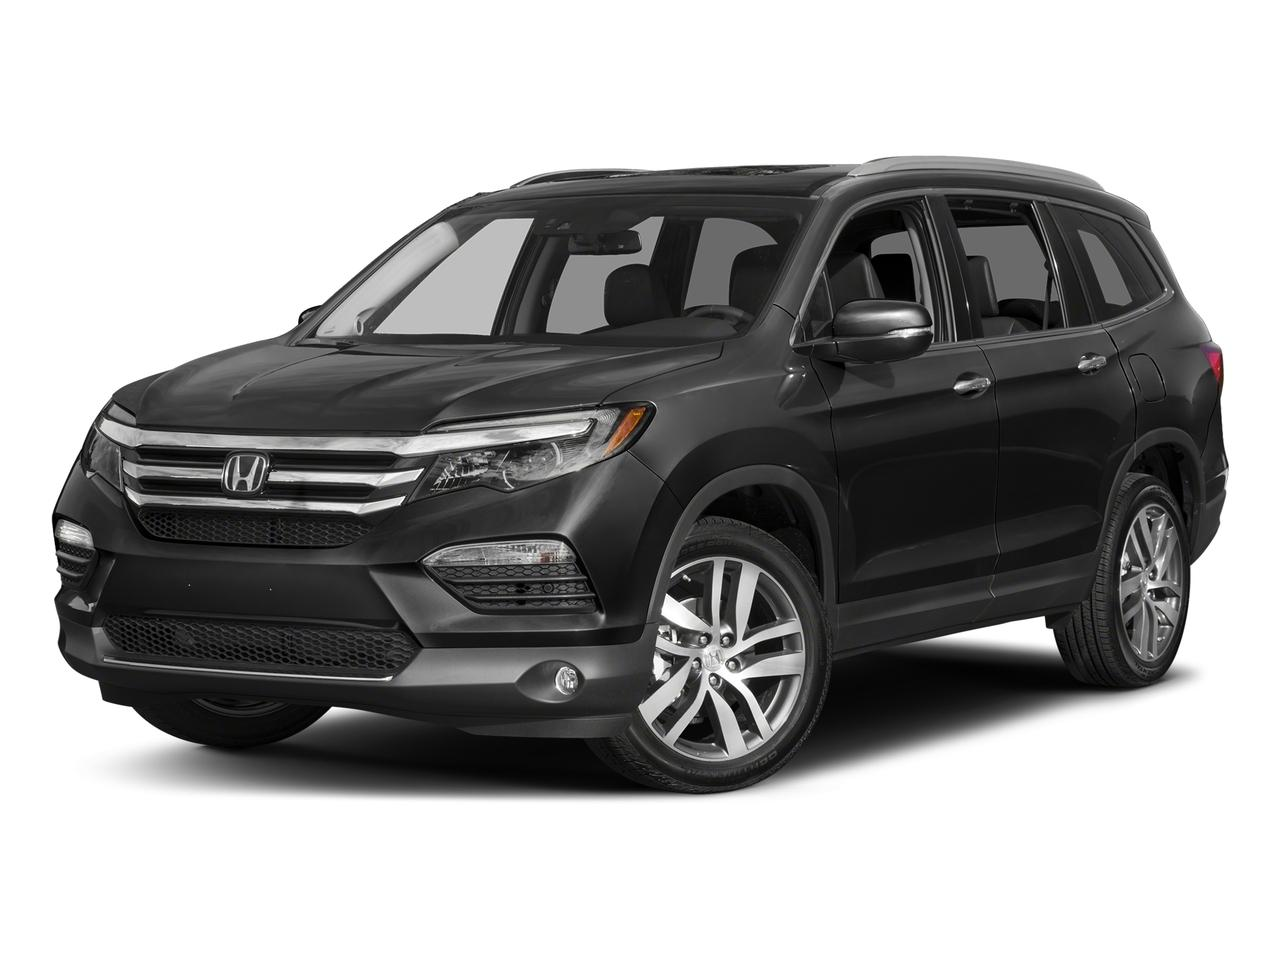 2017 Honda Pilot Vehicle Photo in Spokane, WA 99207